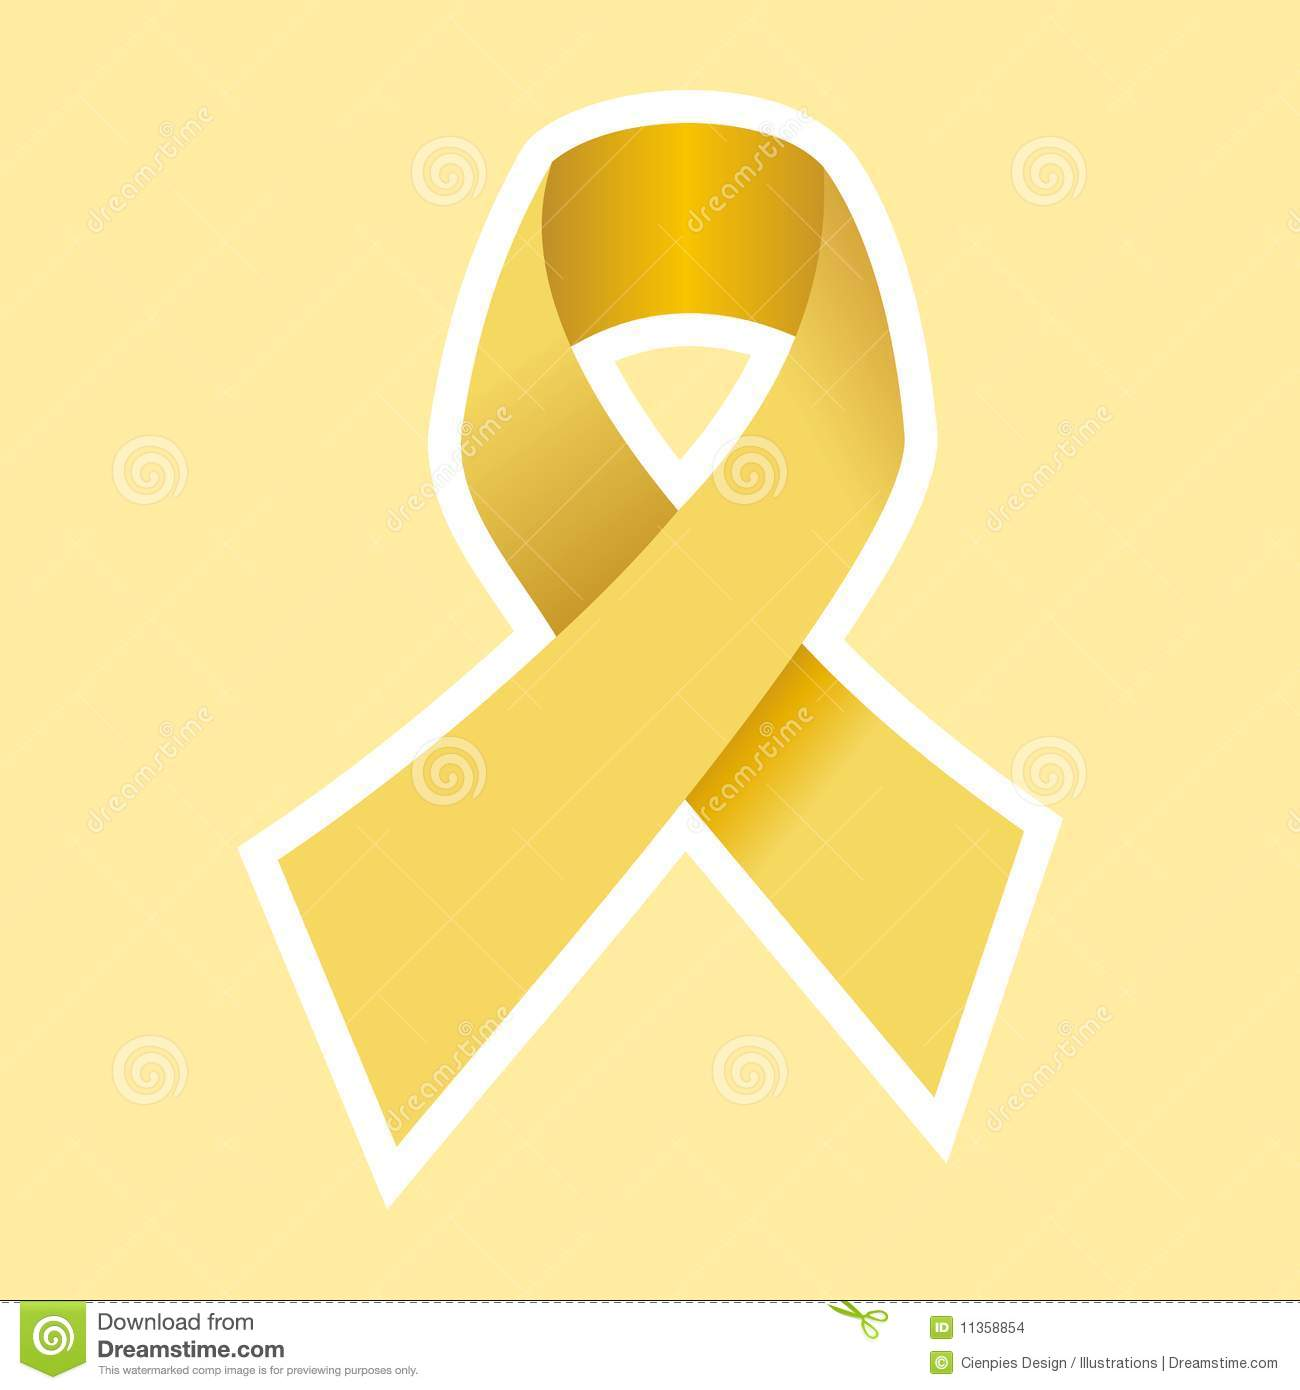 Aids hiv or cancer symbol in gold stock vector illustration of aids hiv or cancer symbol in gold buycottarizona Image collections